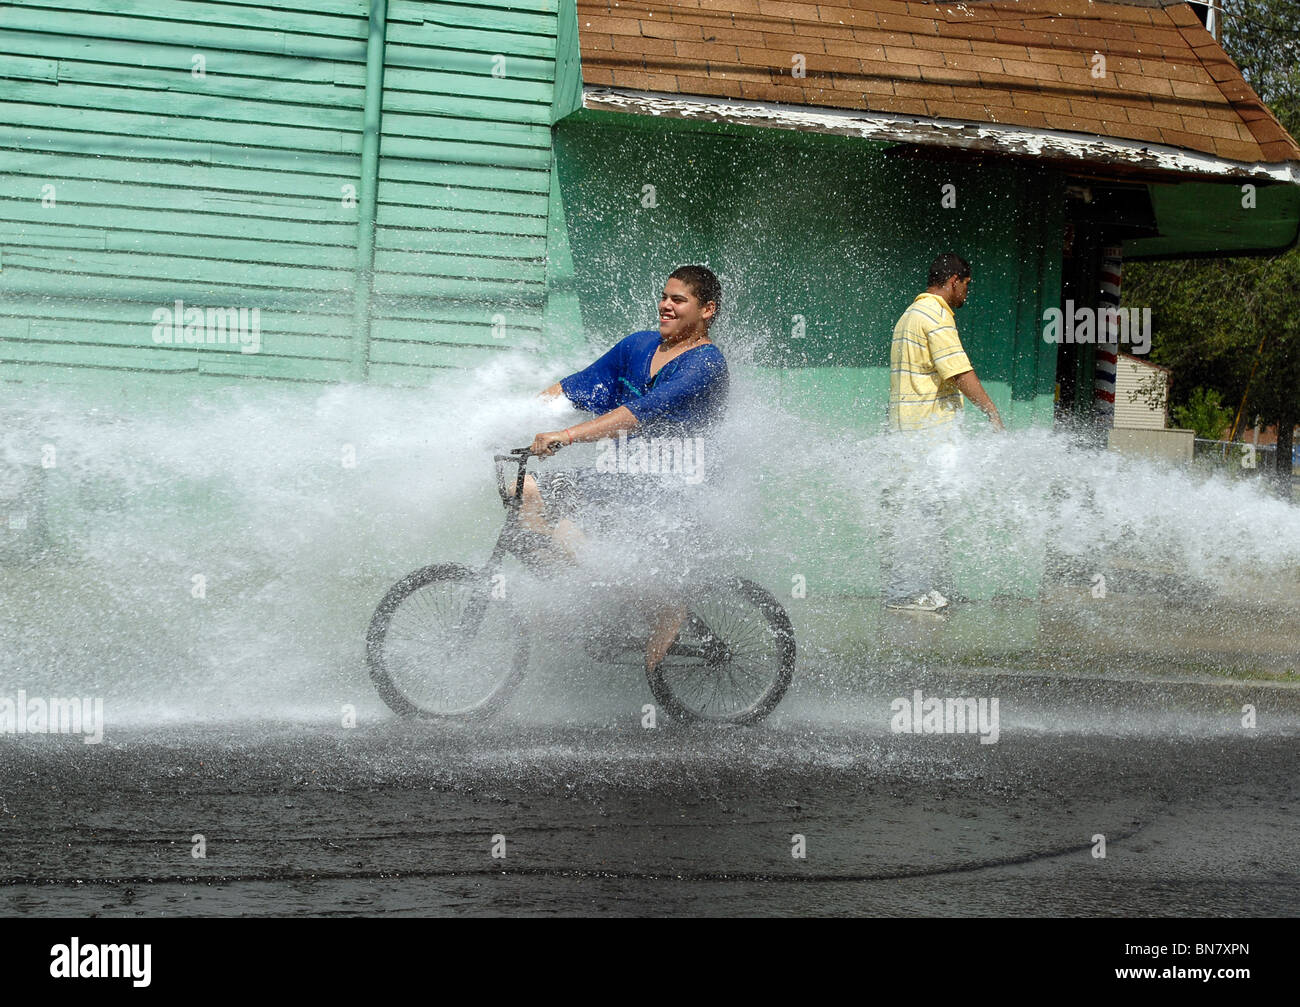 A Young teen rides through the spray of an open fire hydrant during a heat wave in New Haven CT USA where temps Stock Photo